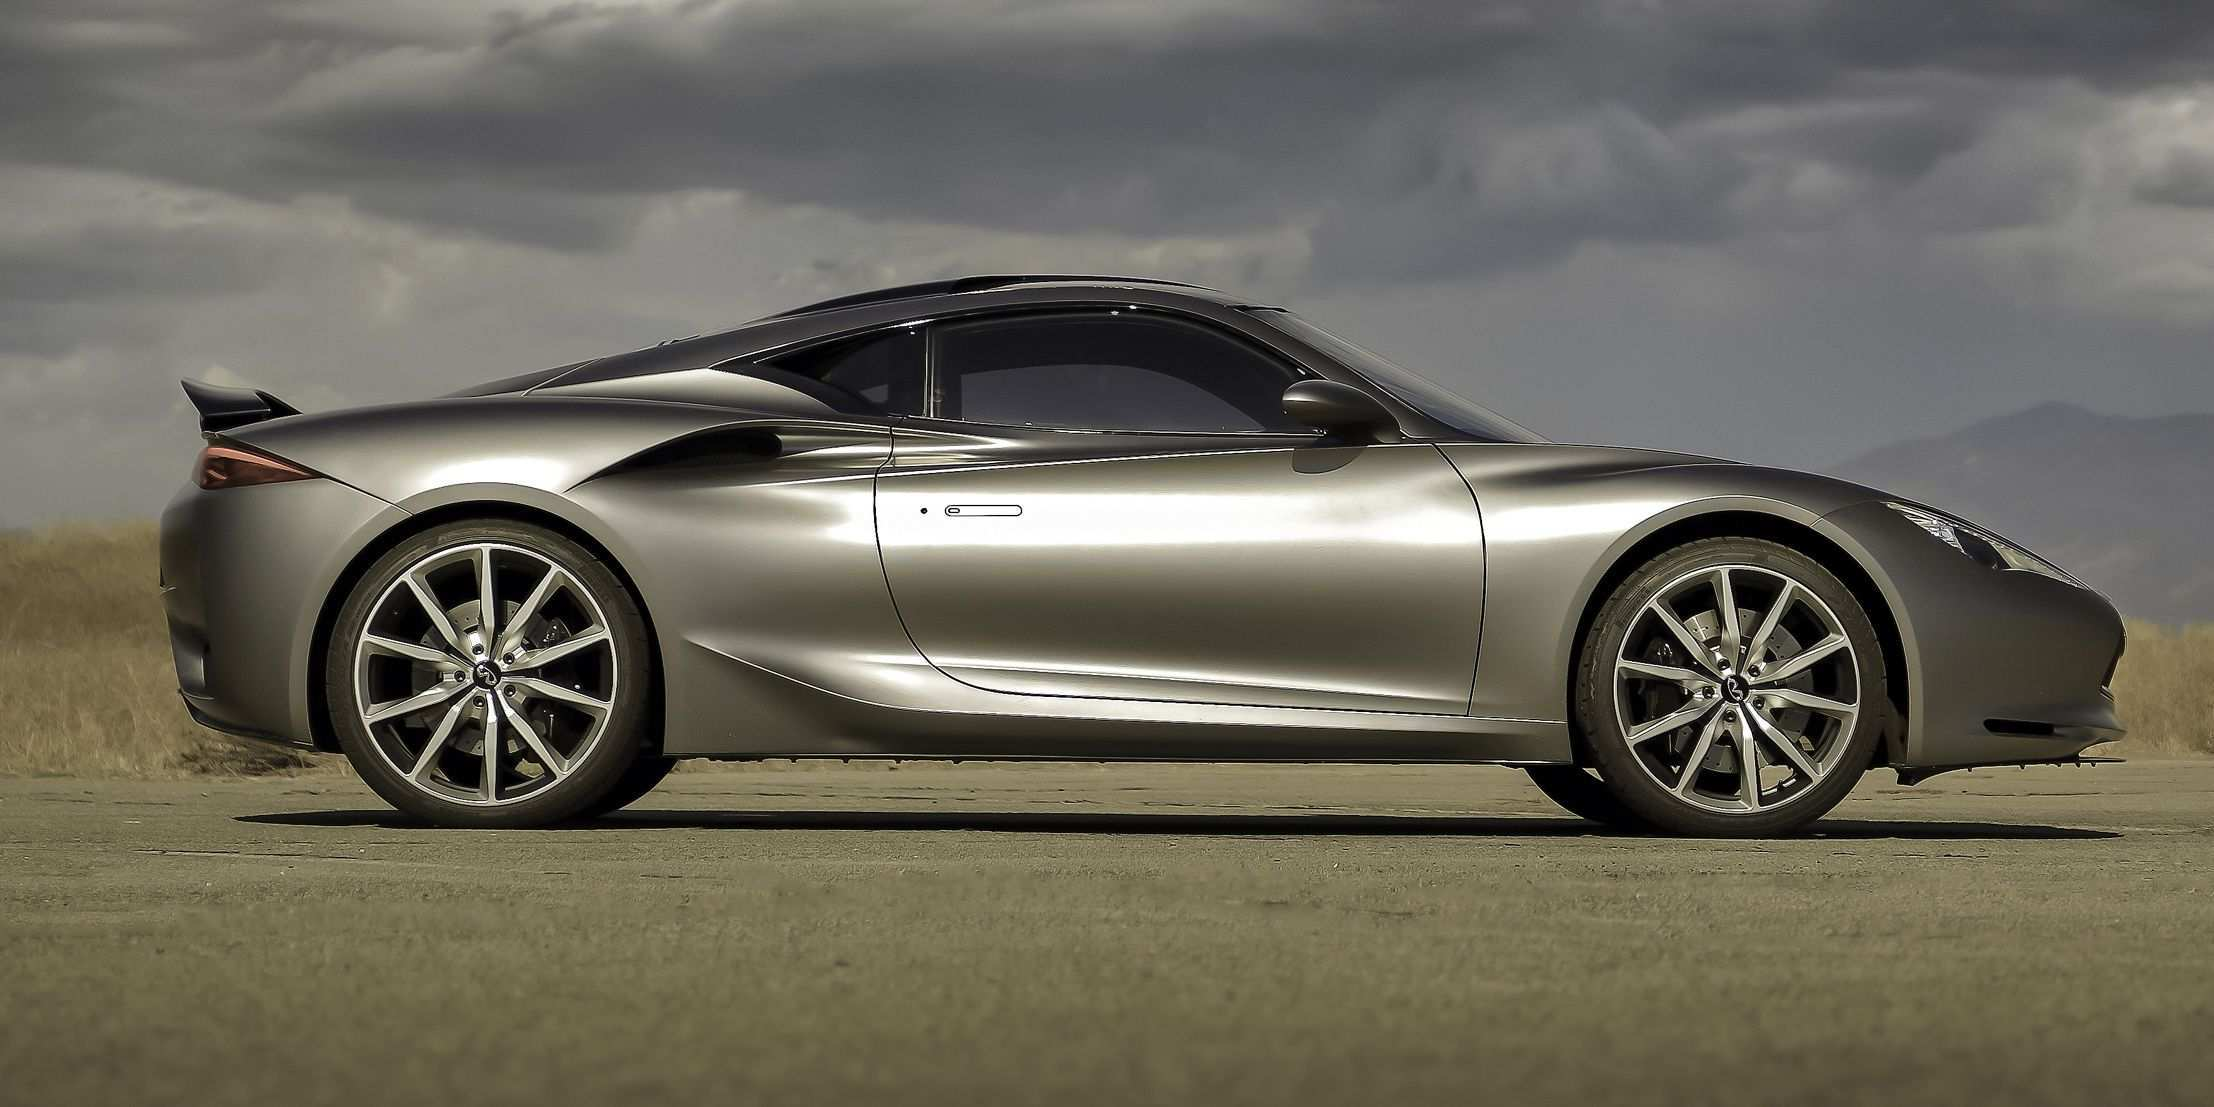 54 Great 2020 Infiniti Cars Exterior by 2020 Infiniti Cars